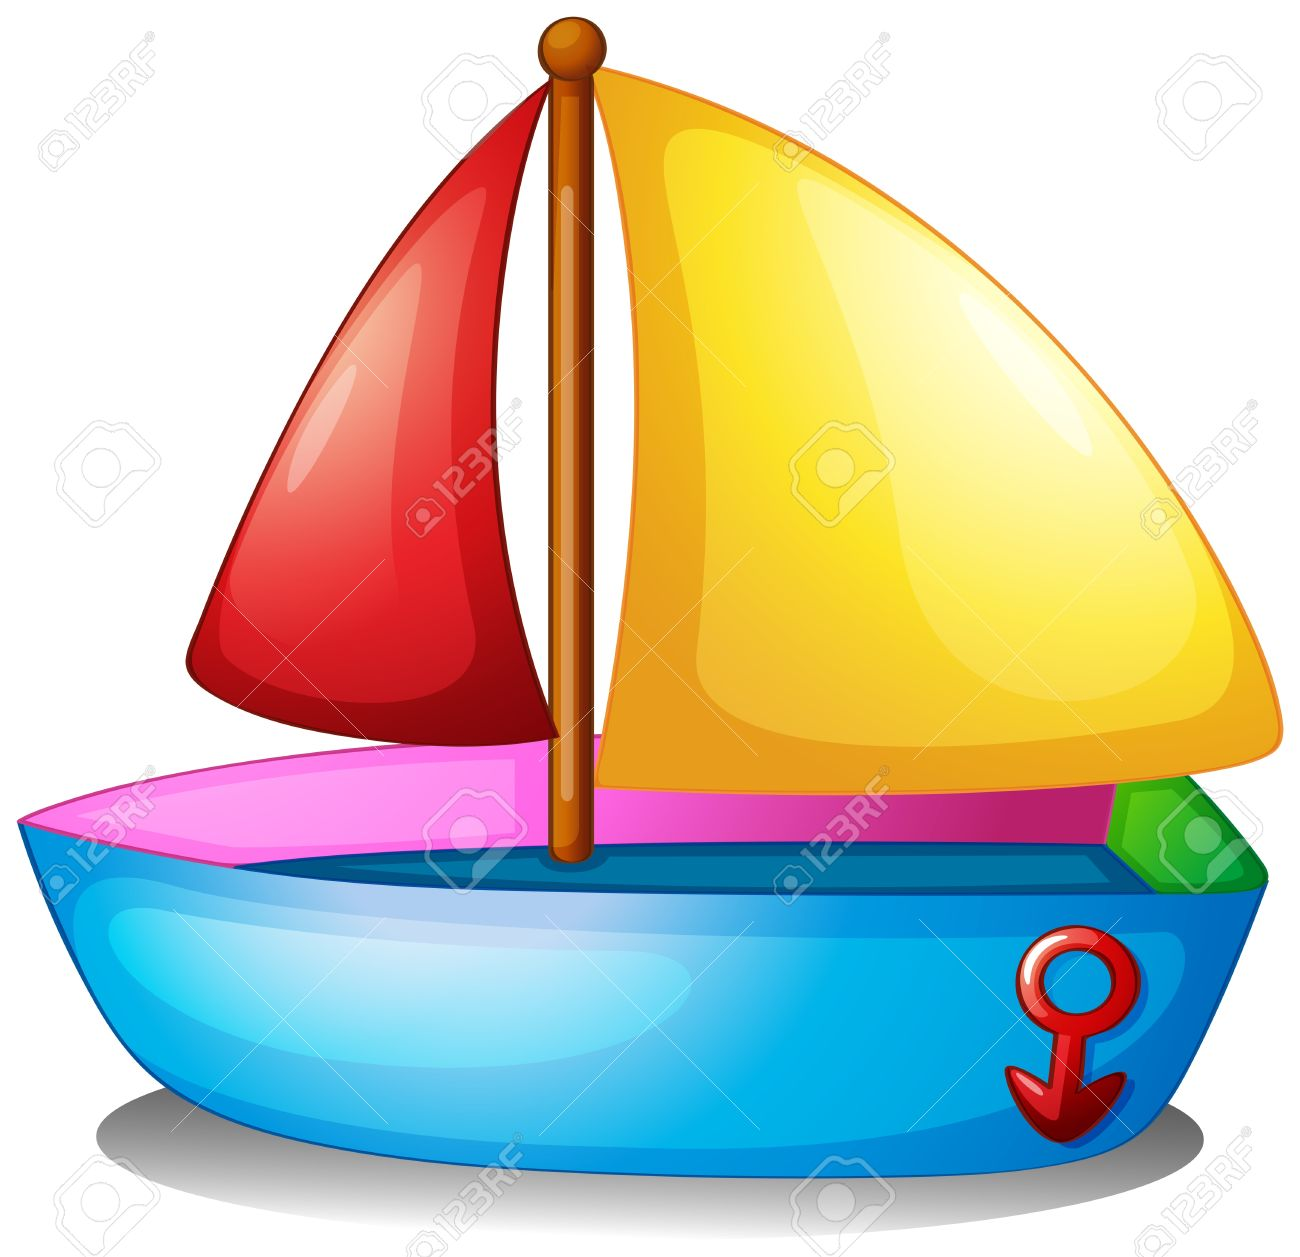 Illustration Of A Colorful Boat On A White Background Royalty Free.